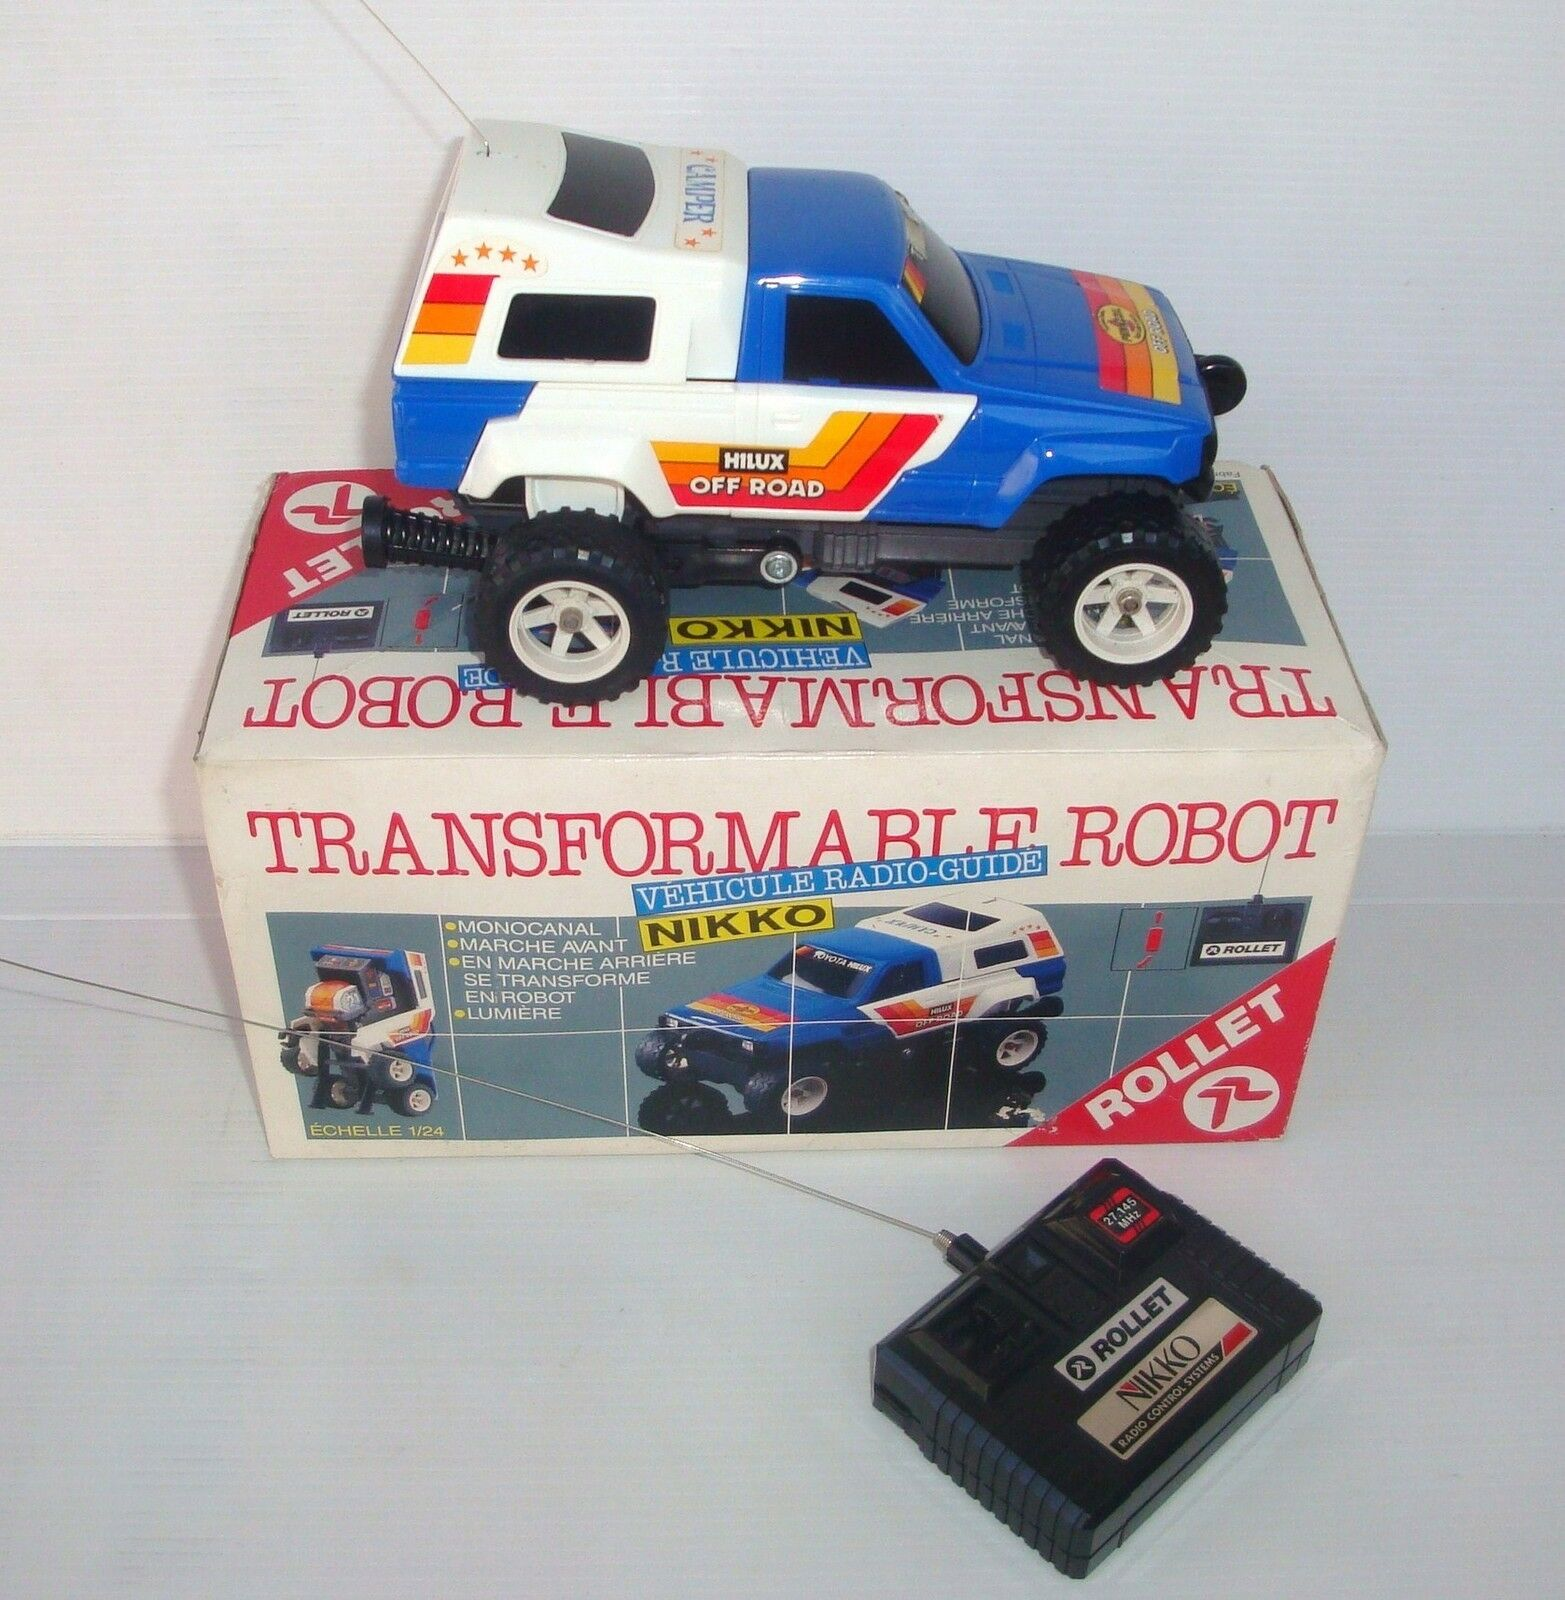 Car radio ordered Nikko Rollet Robot transformable epoq Transformers 1 24